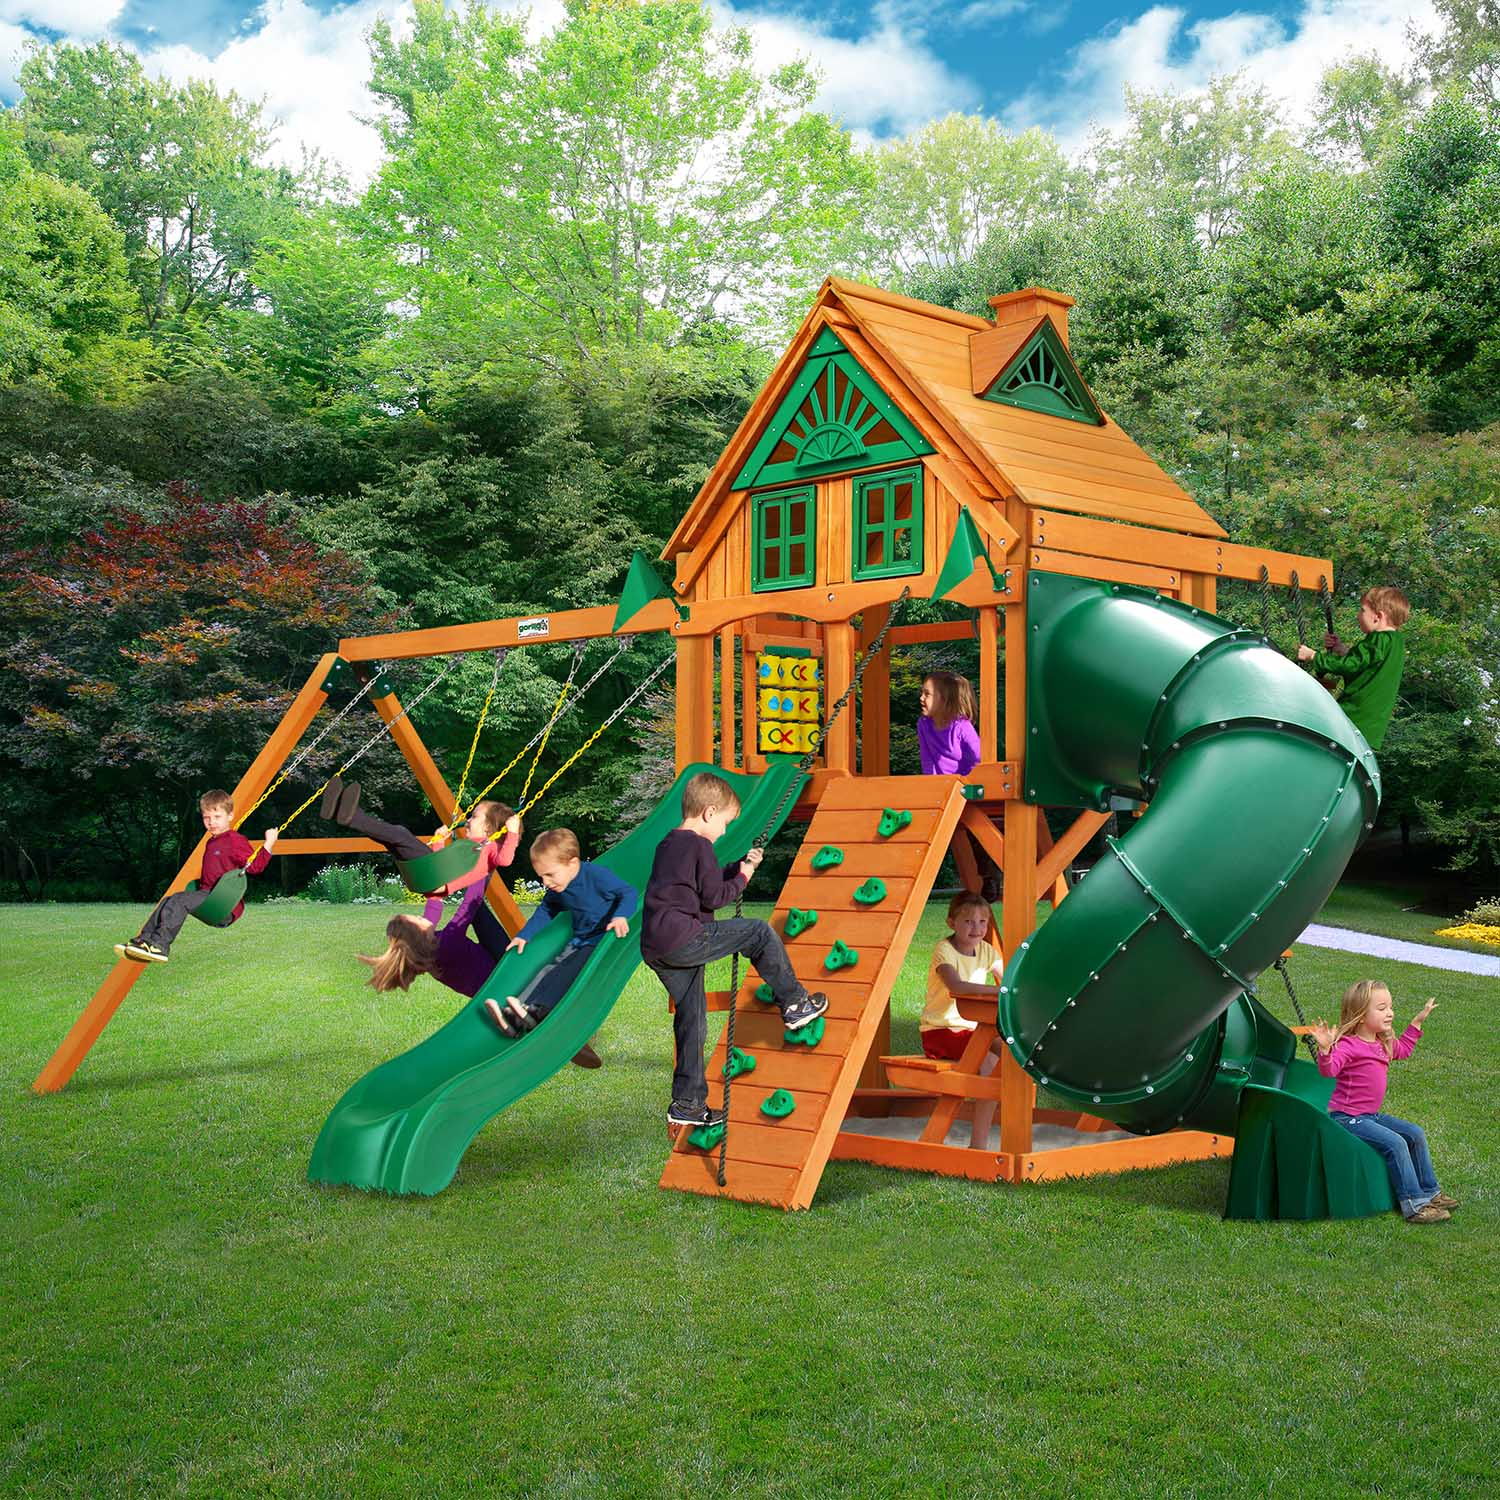 Gorilla Playsets Mountaineer Treehouse Wooden Swingset Gorilla Playsets Mountaineer Treehouse Wooden Swing